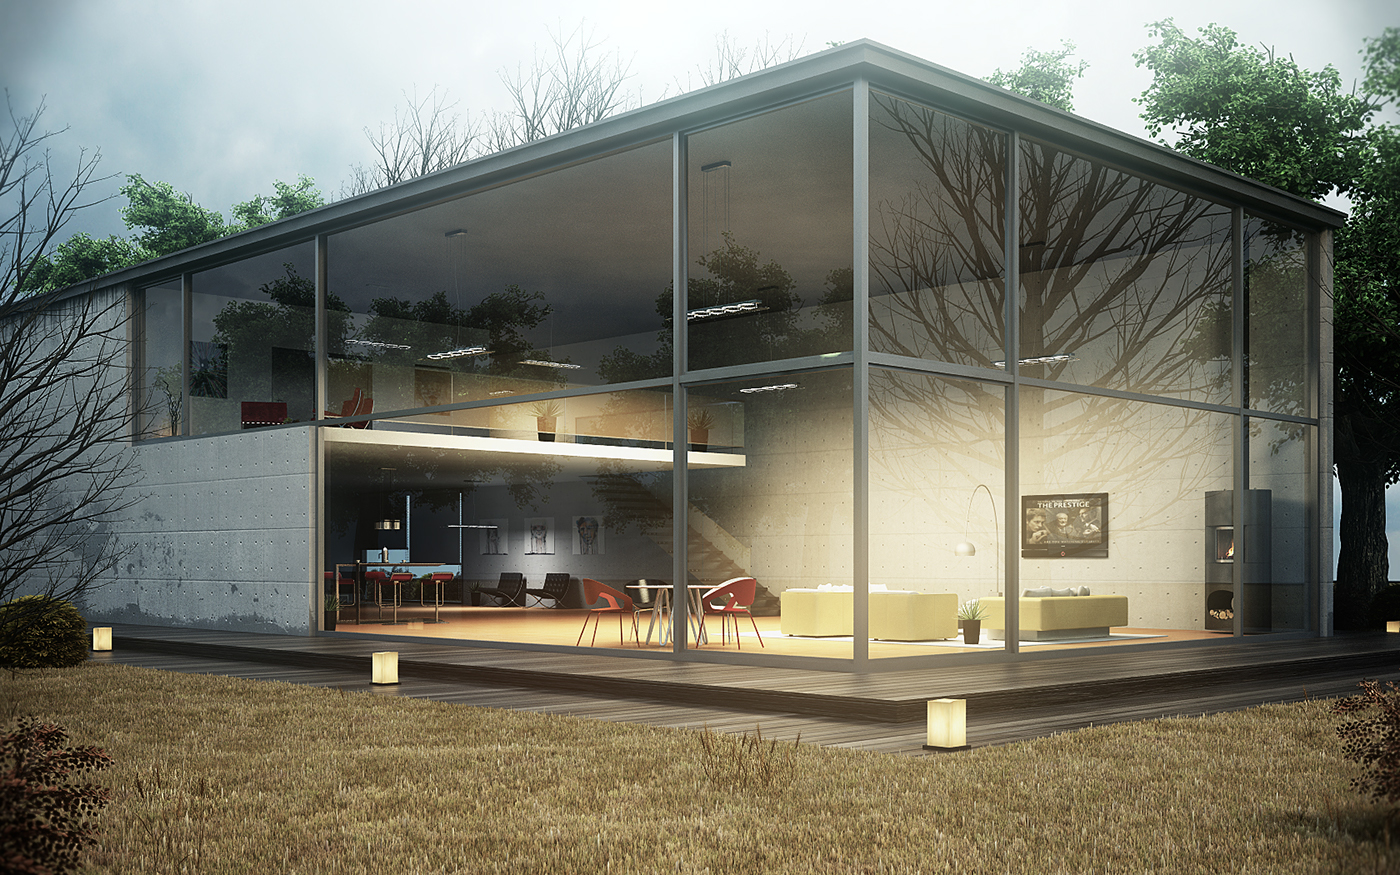 The glass house project